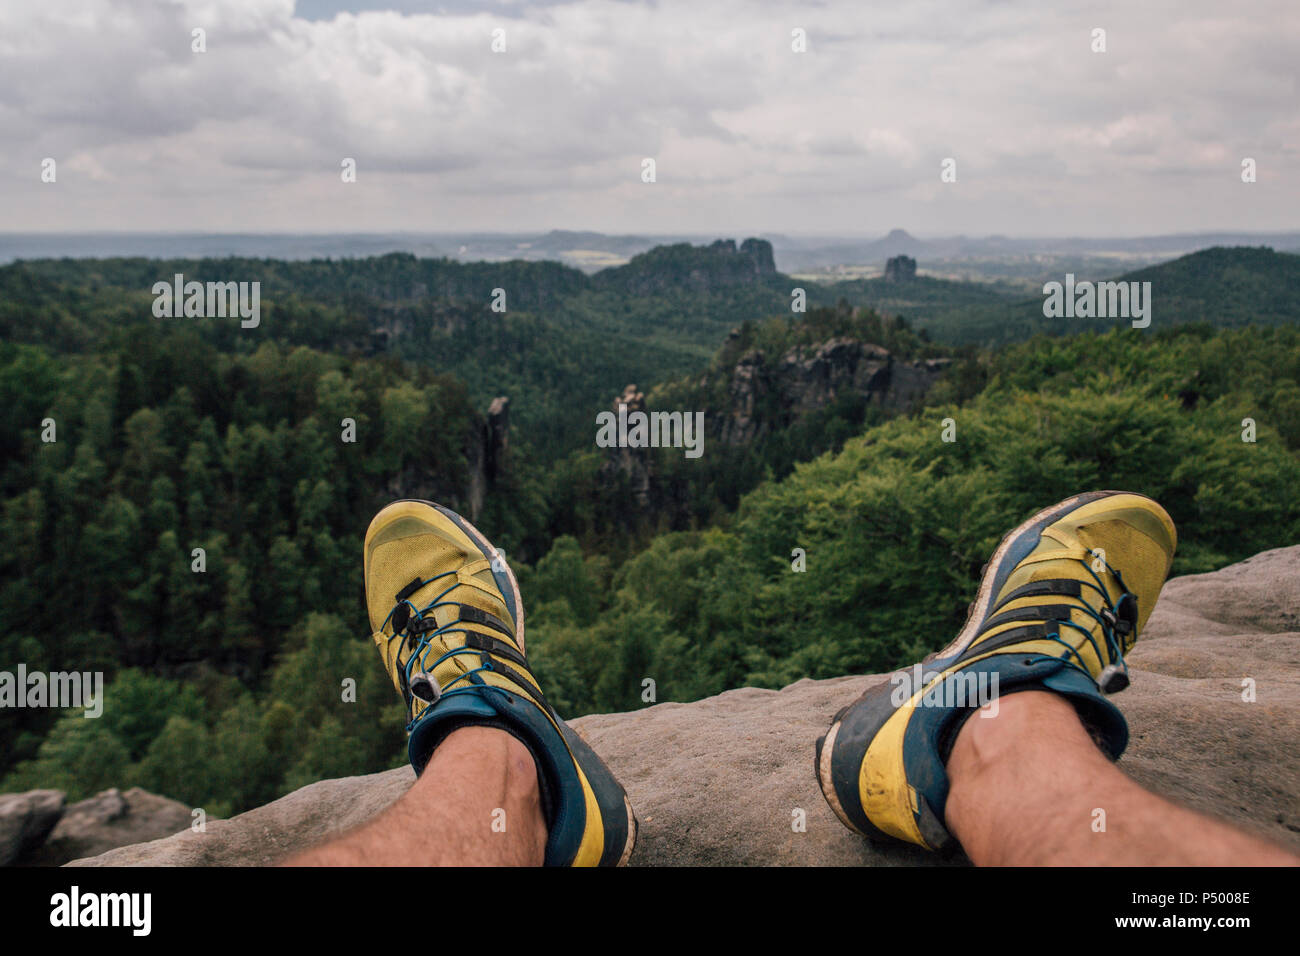 Germany, Saxony, Elbe Sandstone Mountains, man's feet on a hiking trip sitting on rock - Stock Image